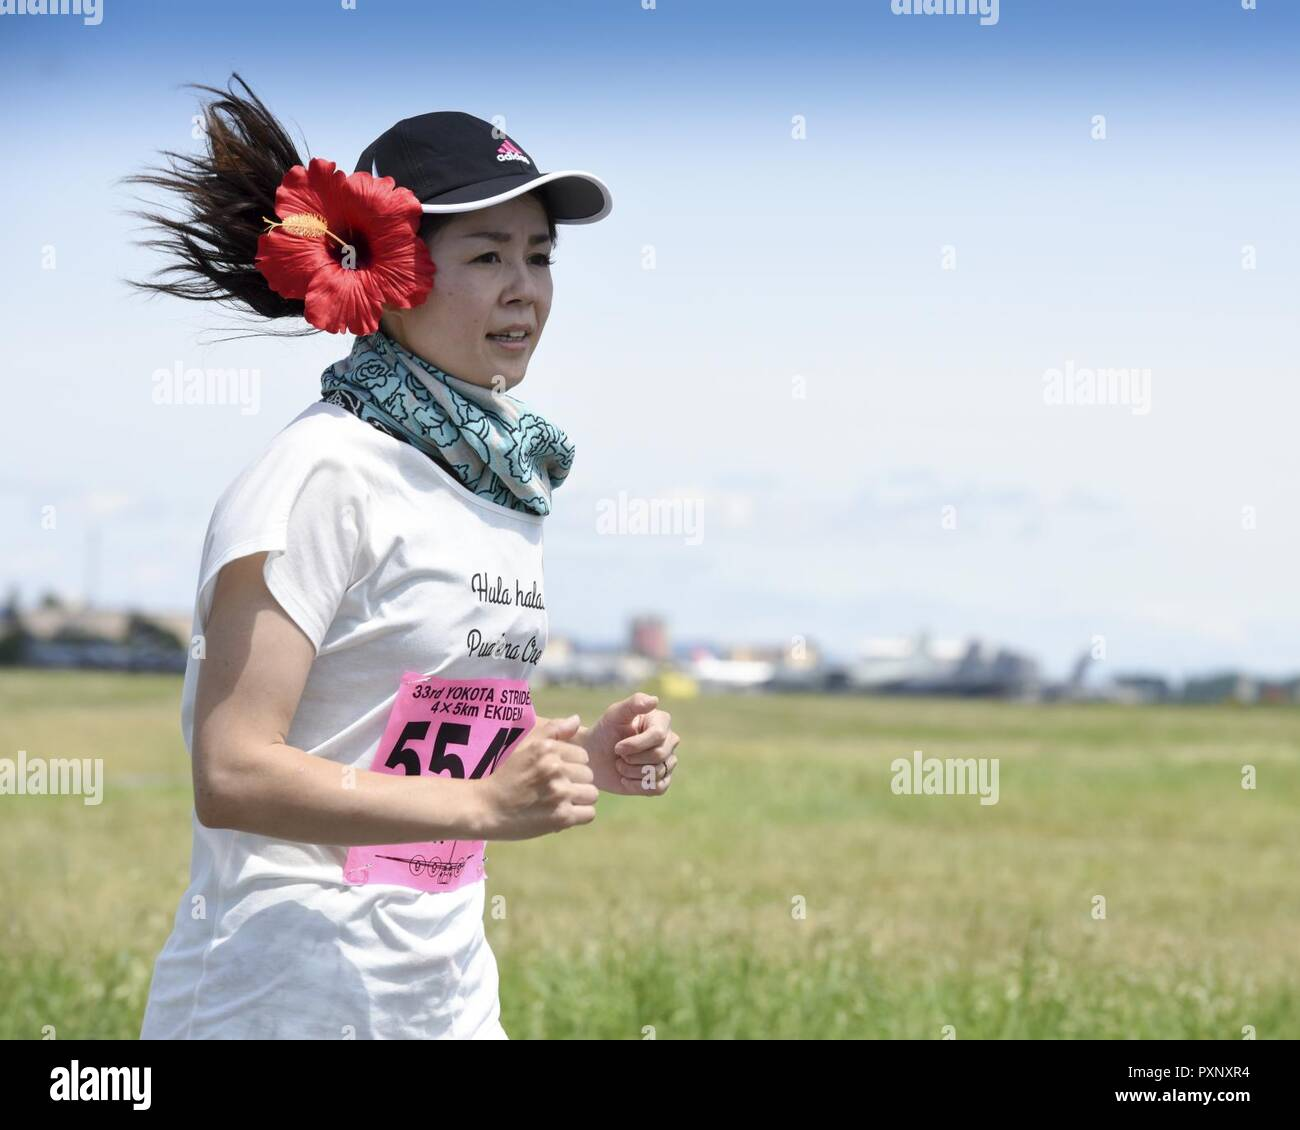 A runner participates in the 5K Race during the 33rd Annual Yokota Striders Ekiden at Yokota Air Base, Japan, June 4, 2017. The races, which consisted of a 2K Kids Run, 2K Family Run, 5K Race and the main Ekiden Race event, promoted friendship and  physical fitness. - Stock Image